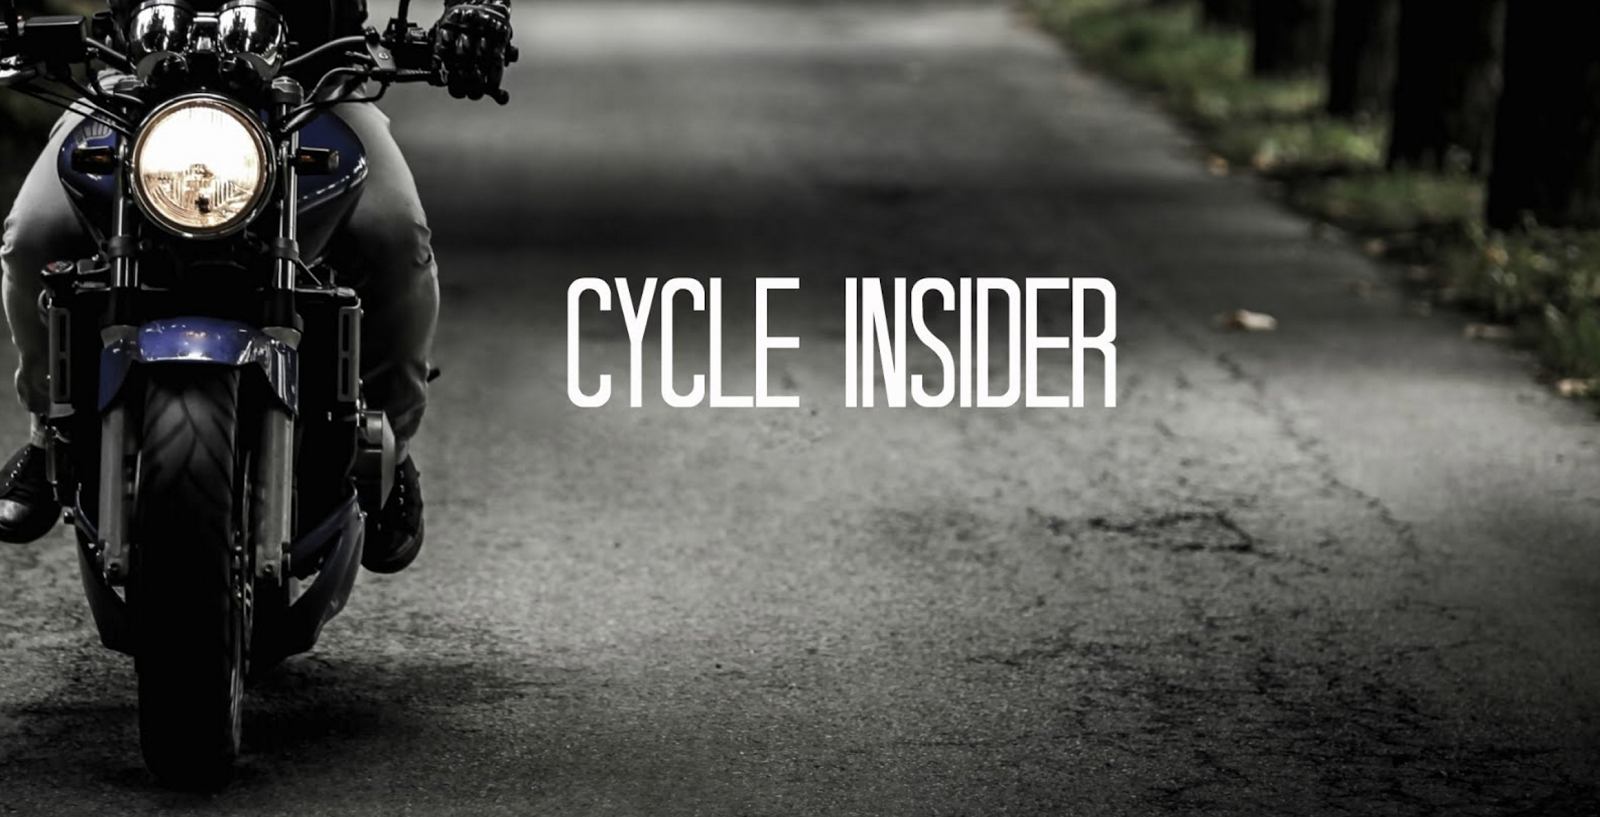 Cycle Insider